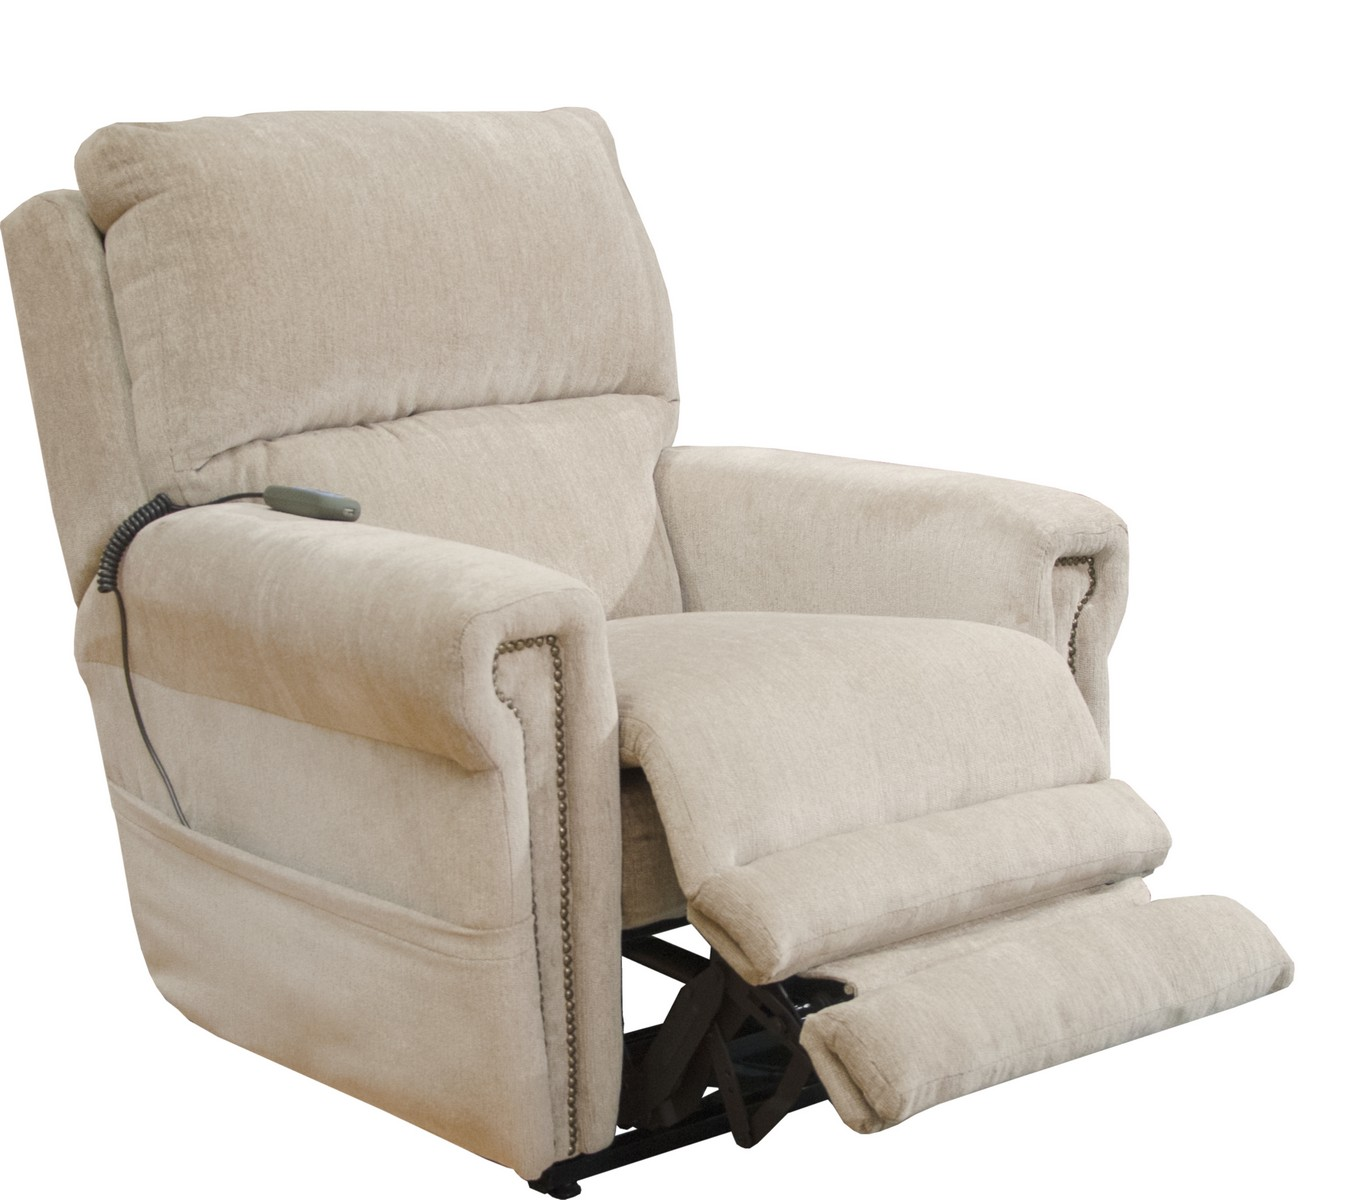 CatNapper Warner Power Headrest Power Lift Lay Flat Recliner Dual Motor and Extended Ottoman - Putty